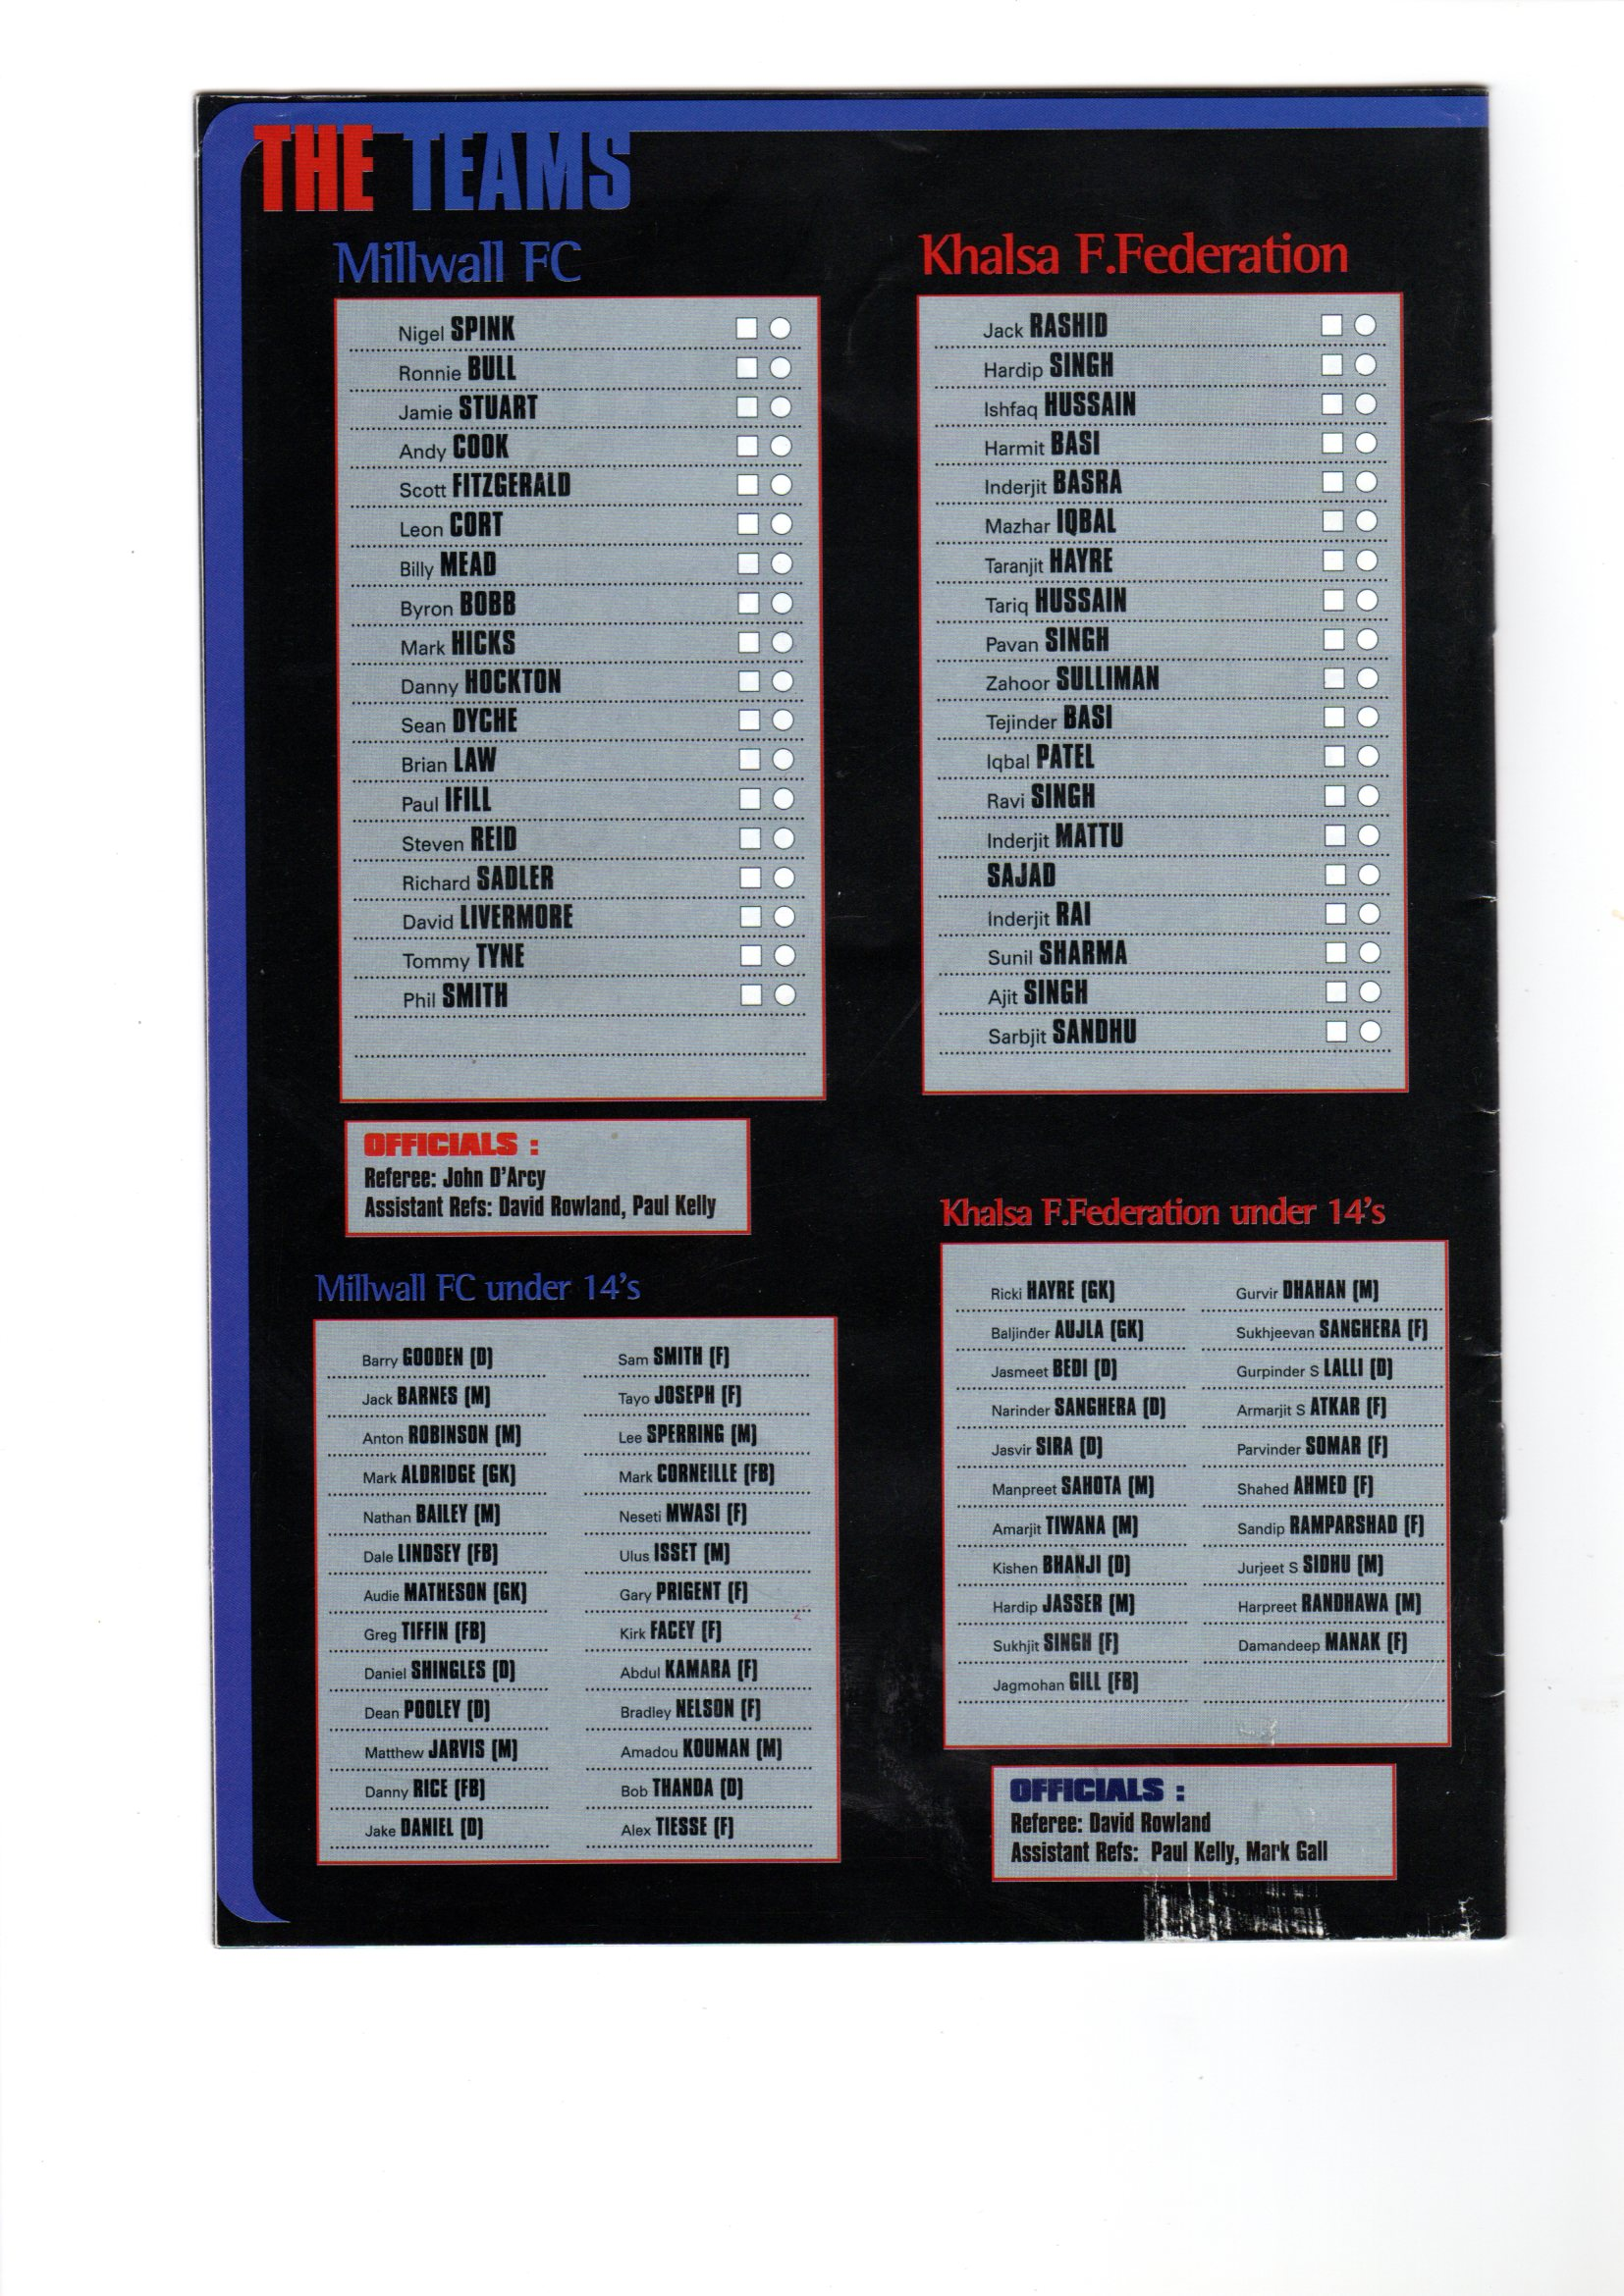 KFF Back Page of Programme from 1999